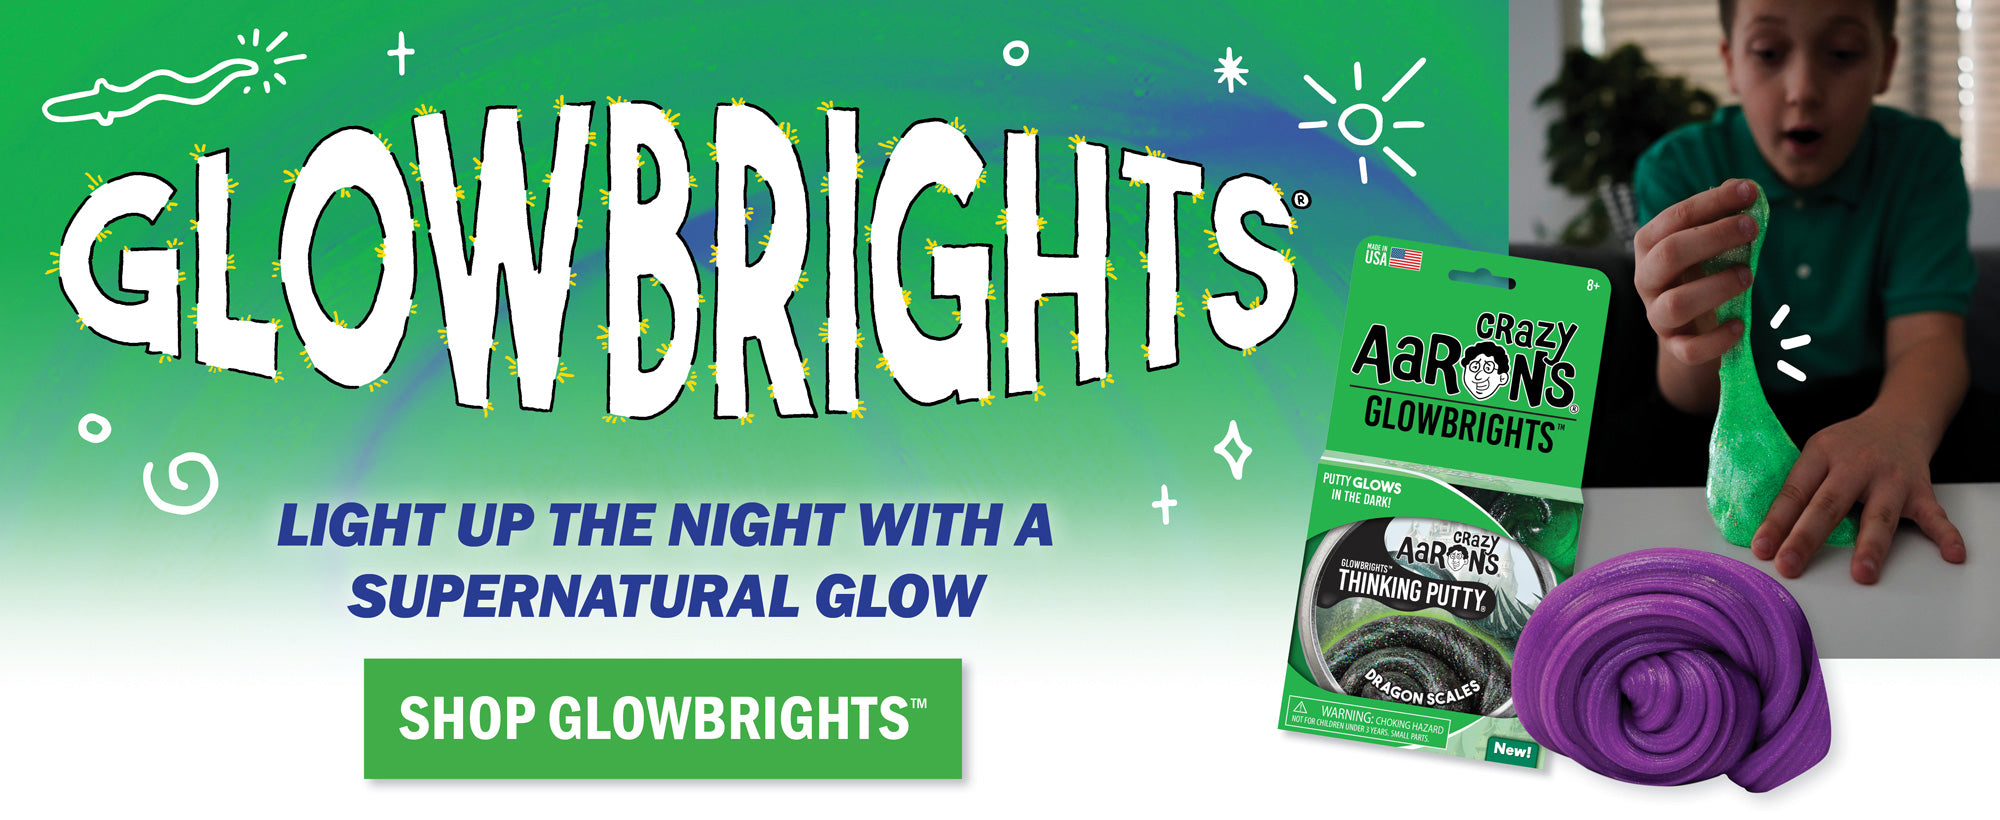 Glowbrights Thinking Putty | Glow in the dark